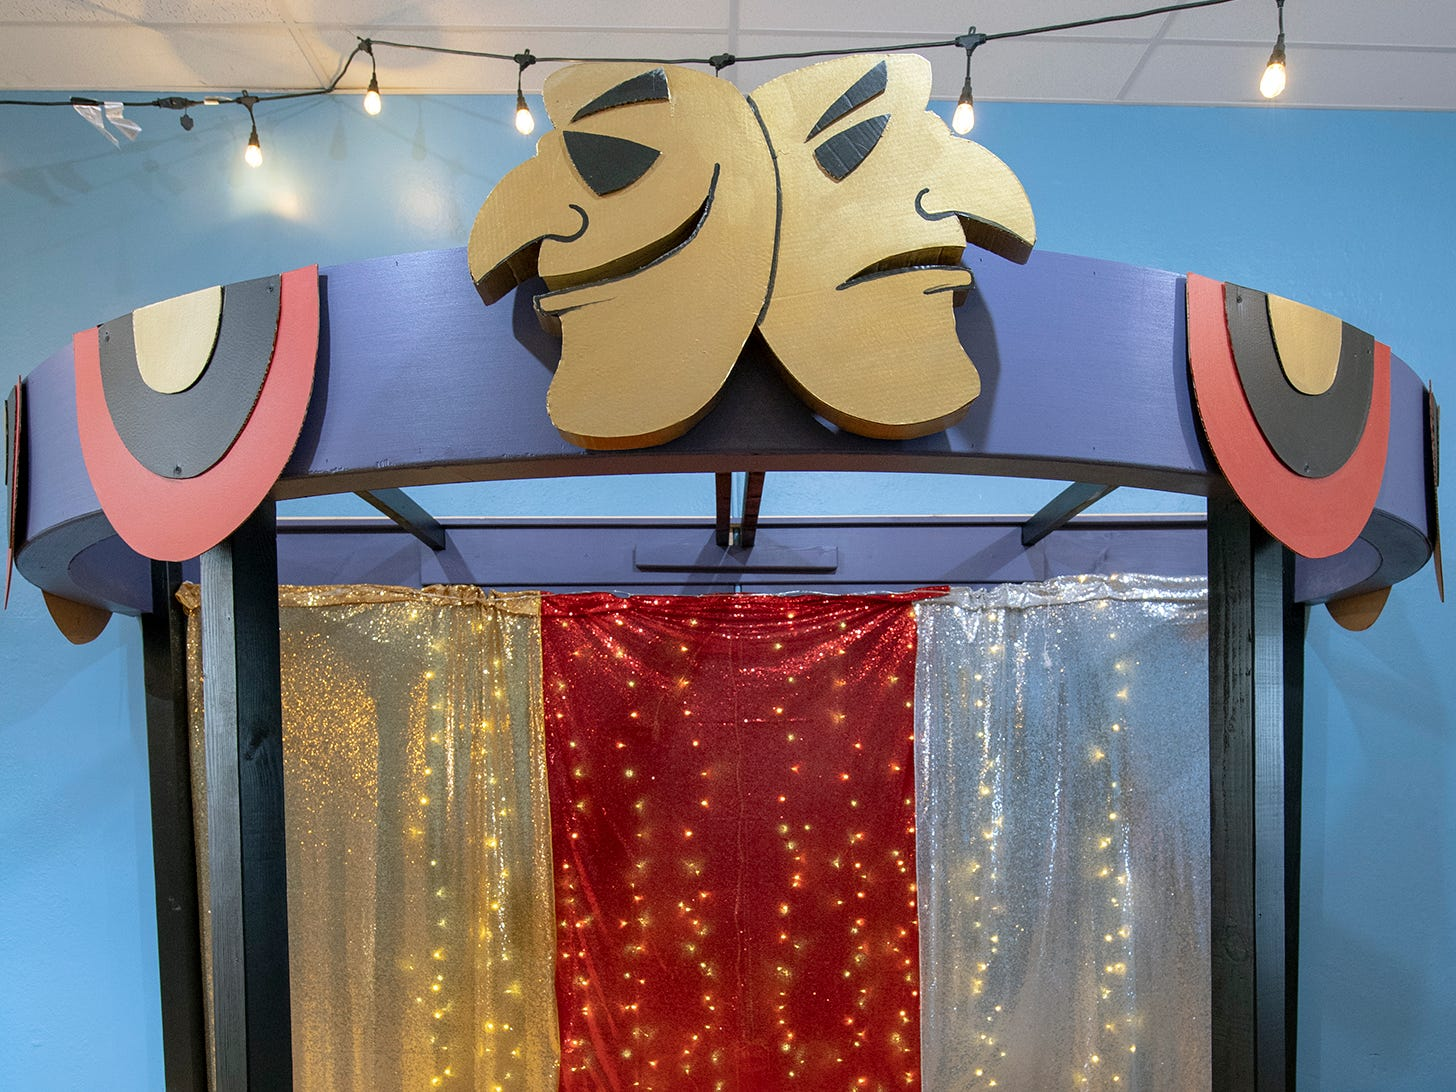 The Theater and Puppet Station is waiting for a curtain to complete the stage at The Curious Little Playhouse.